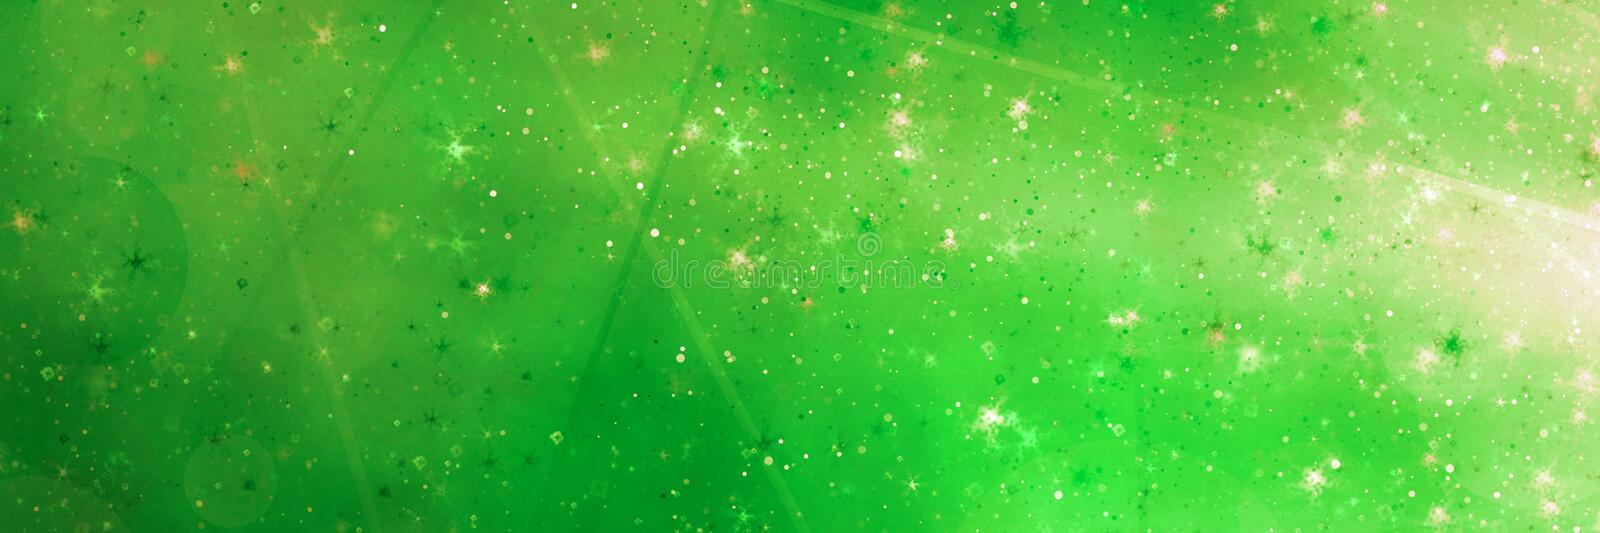 Abstract green magic panoramic background royalty free stock images